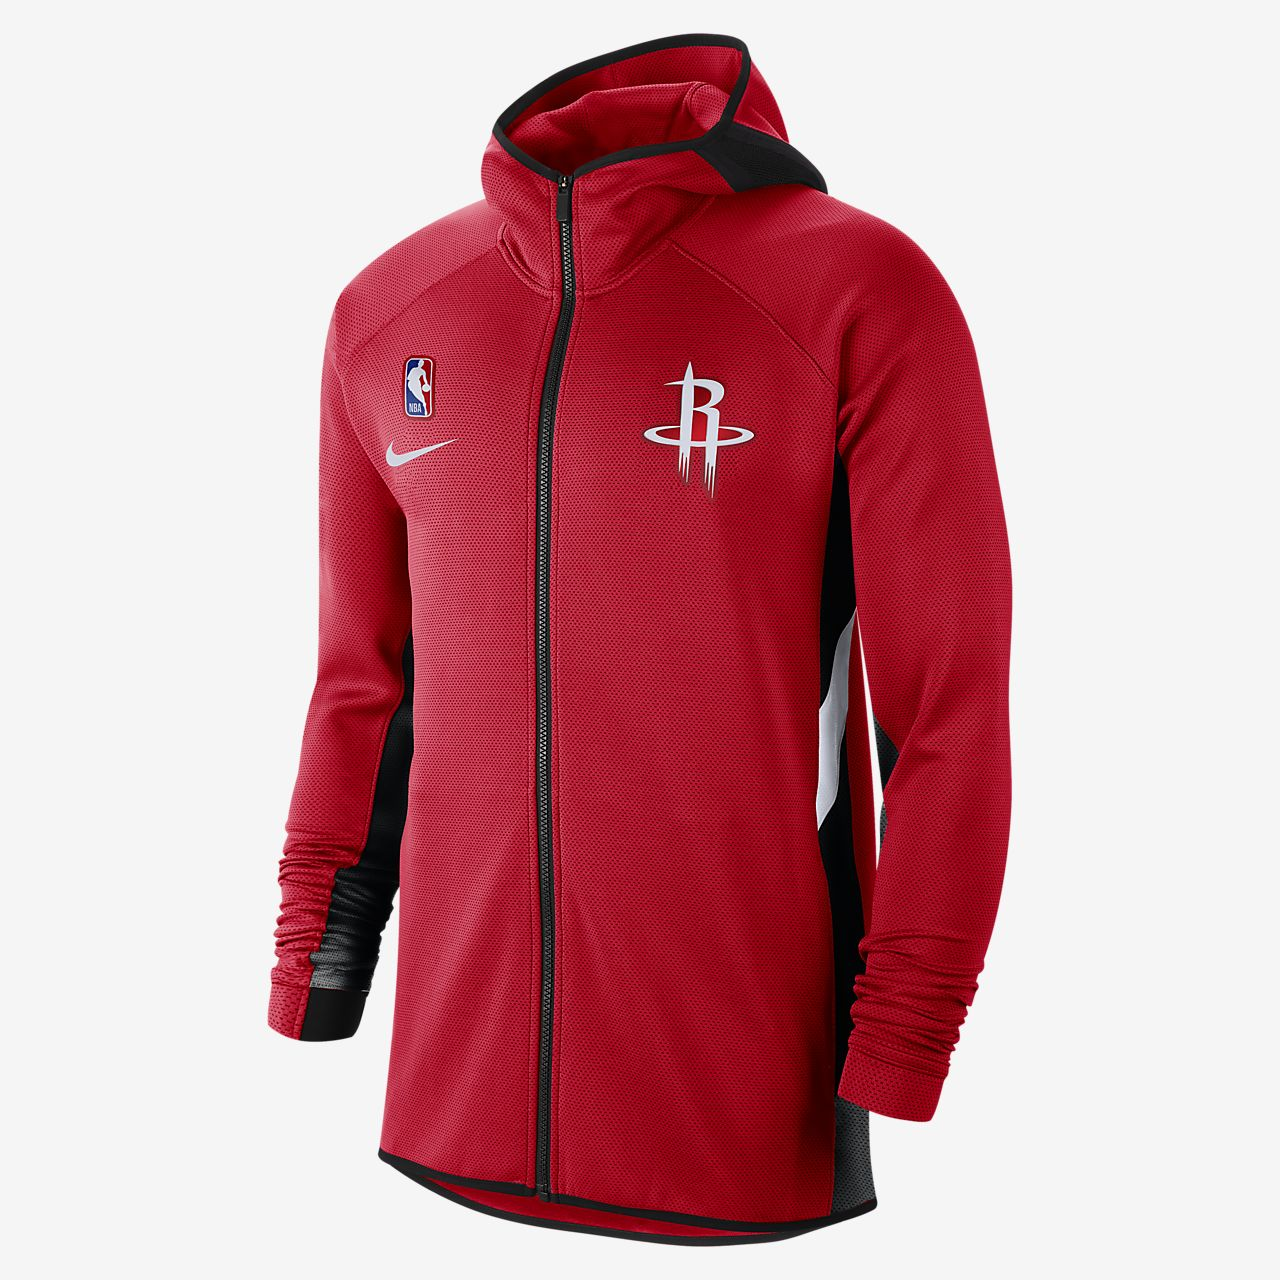 VESTE NIKE NBA ENFANT THERMA SHOWTIME HOUSTON ROCKETS